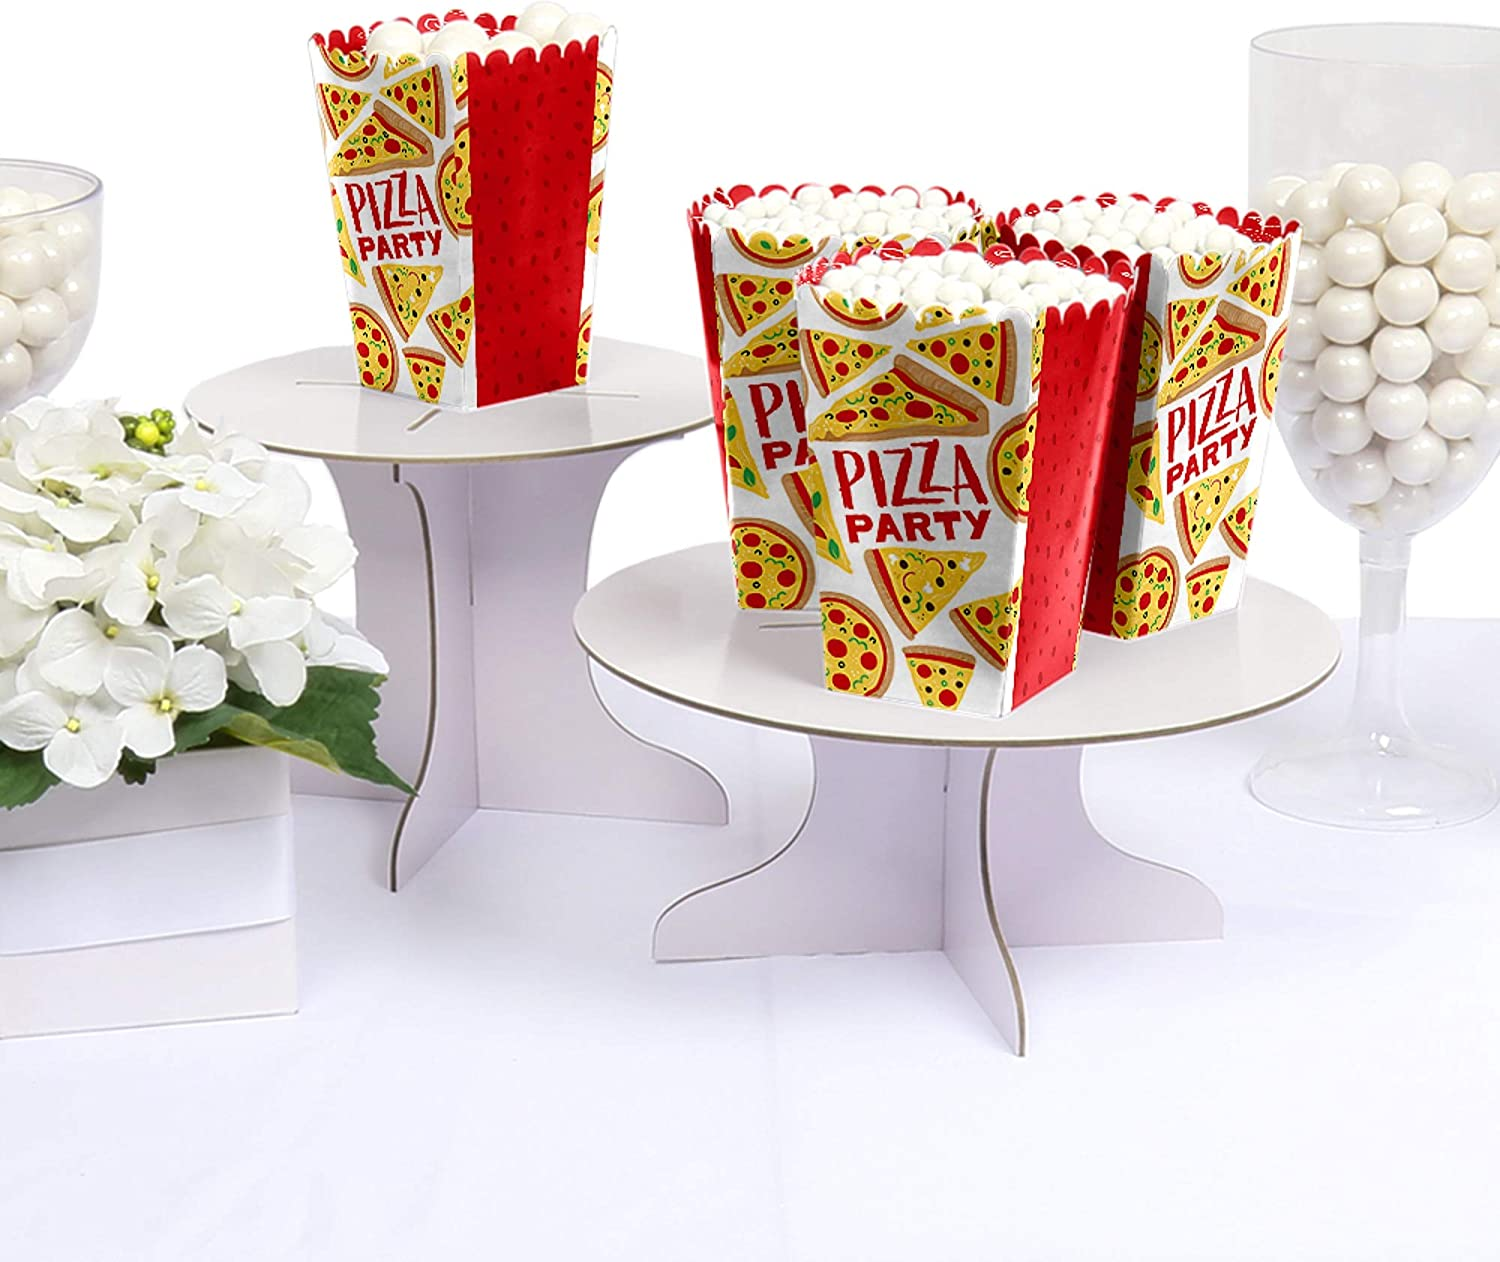 Pizza Party birthday party Favor centerpiece Pizza party decoration birthday Italian Pizza Party Favor Popcorn favor Boxes Party SET OF 12